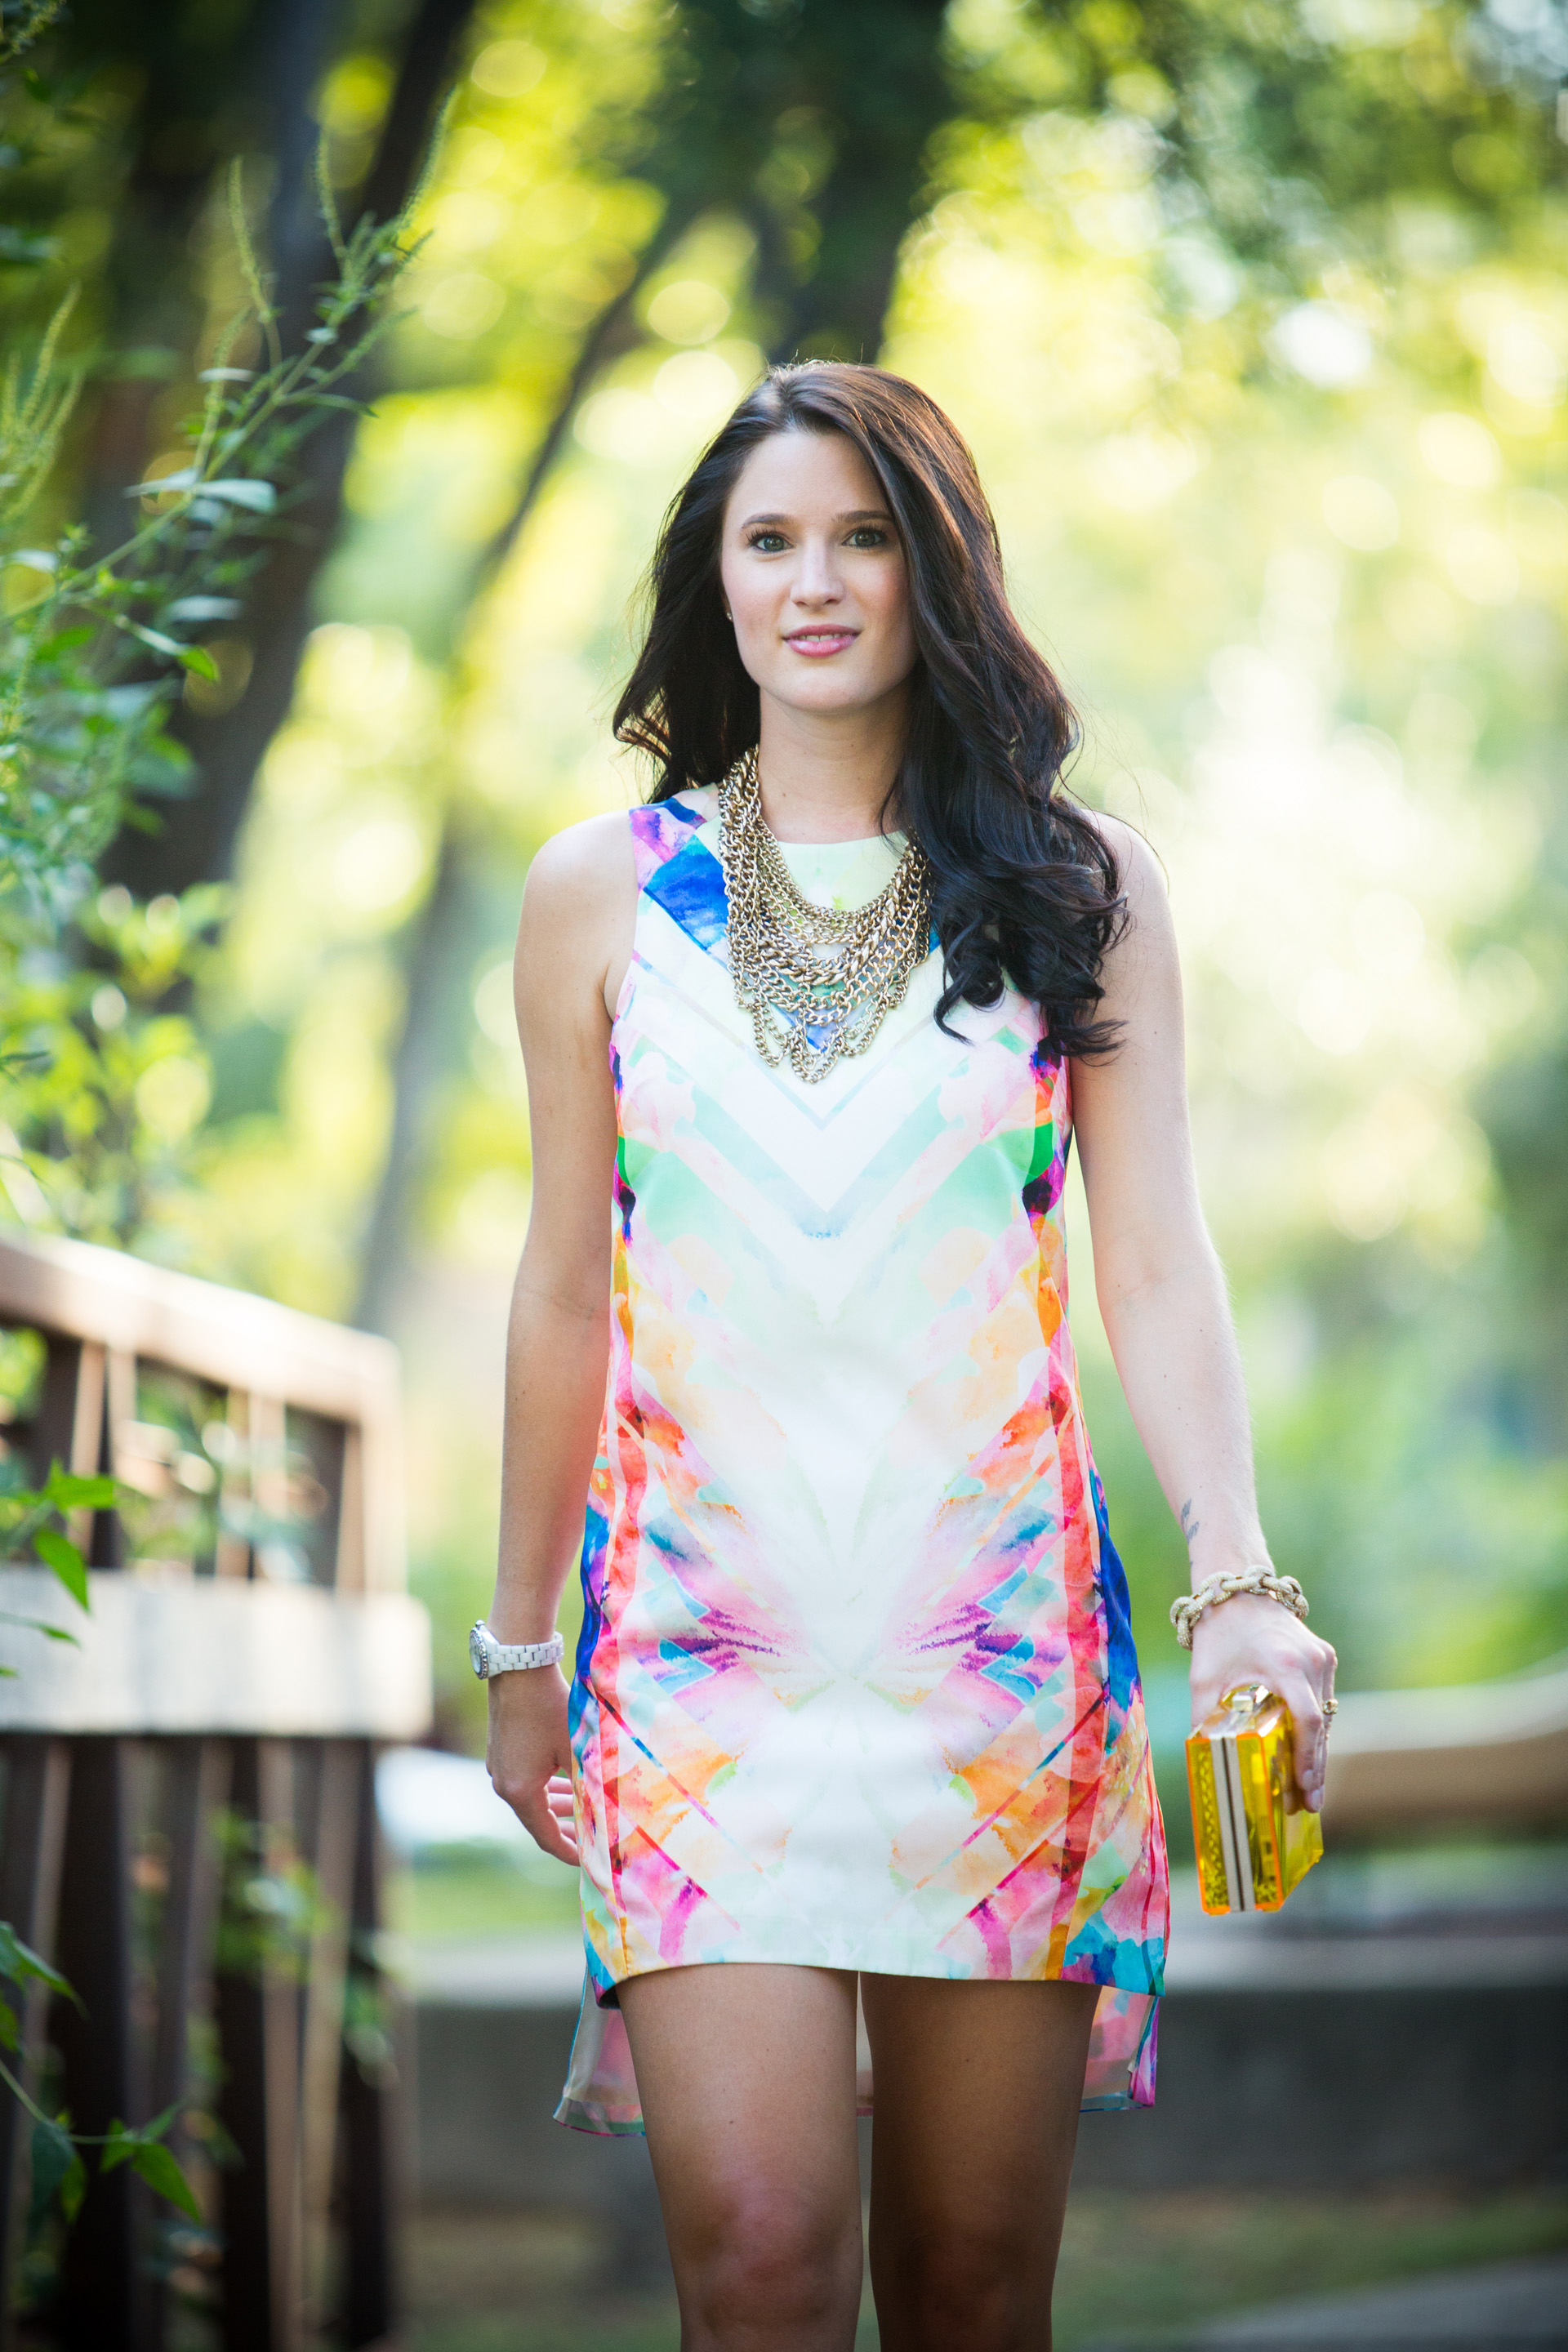 Multi-Colored Dress | how to style a multi-colored dress | how to wear a multi-colored dress | summer fashion tips | summer outfit ideas | summer style tips | what to wear for summer | warm weather fashion | fashion for summer | style tips for summer | outfit ideas for summer || Dressed to Kill